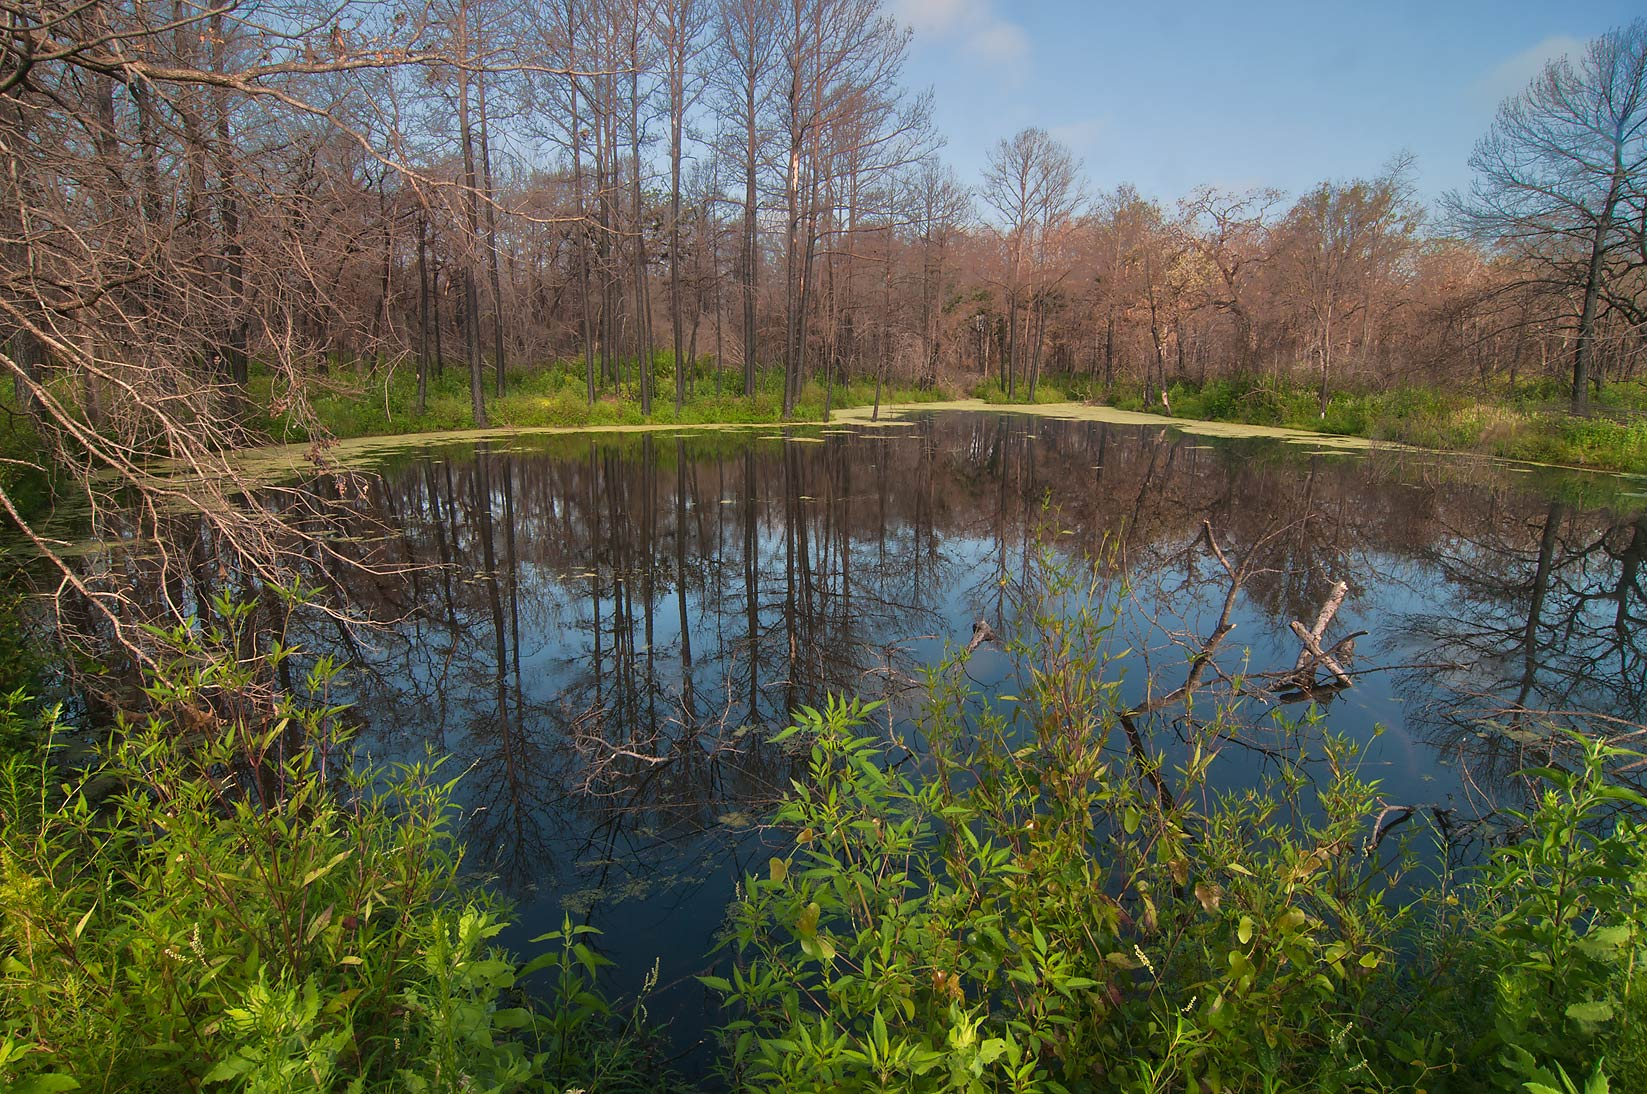 A small pond in a forest in Bastrop State Park. Bastrop, Texas